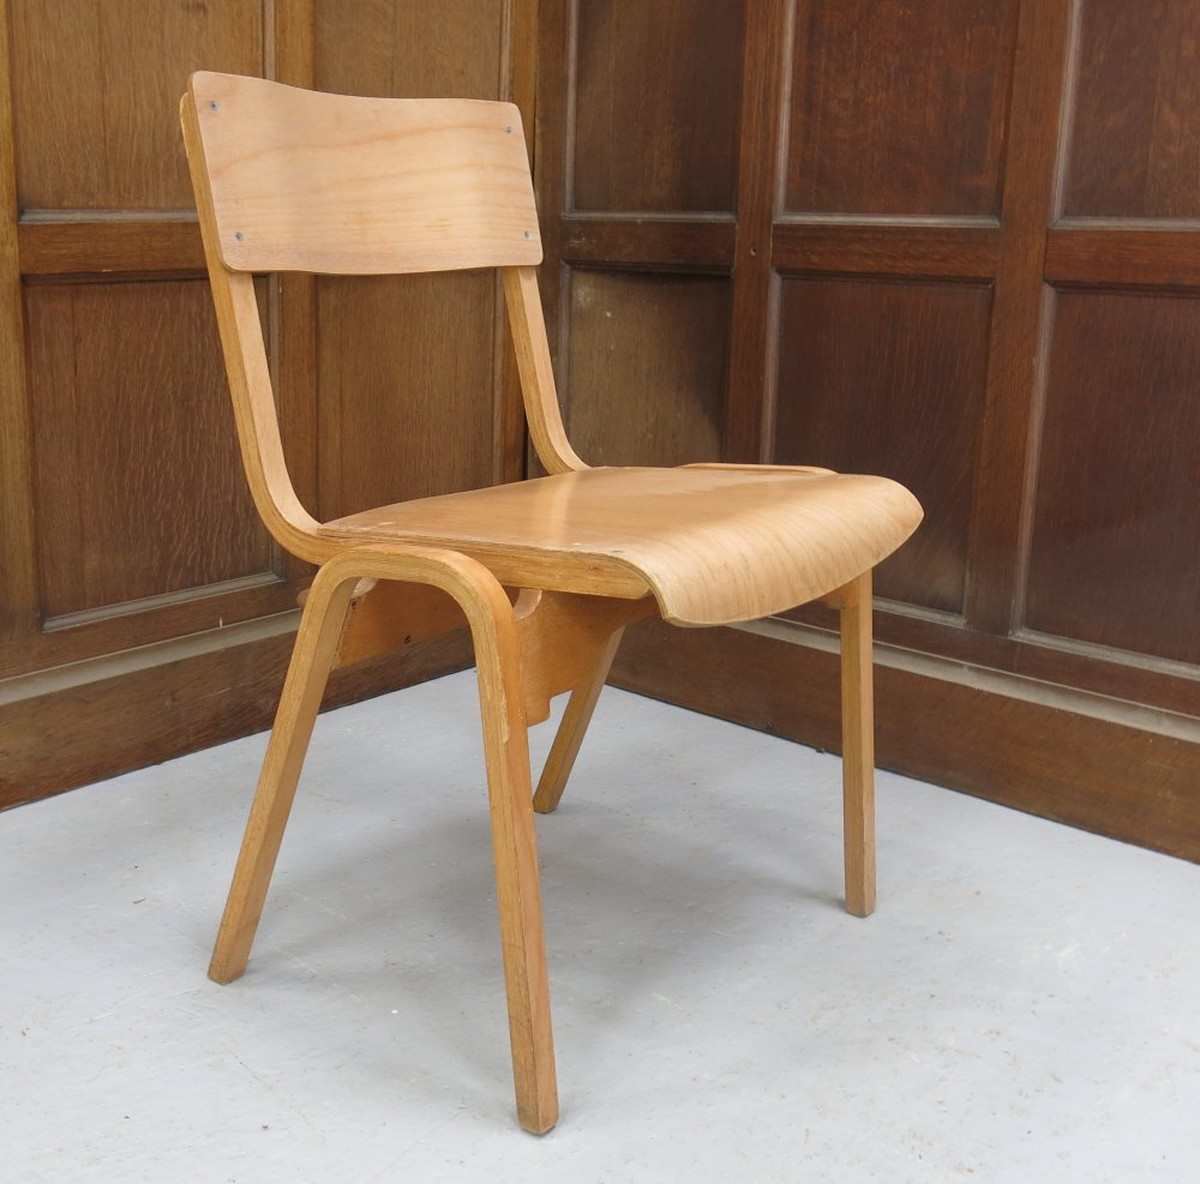 secondhand chairs and tables stacking chairs vintage british